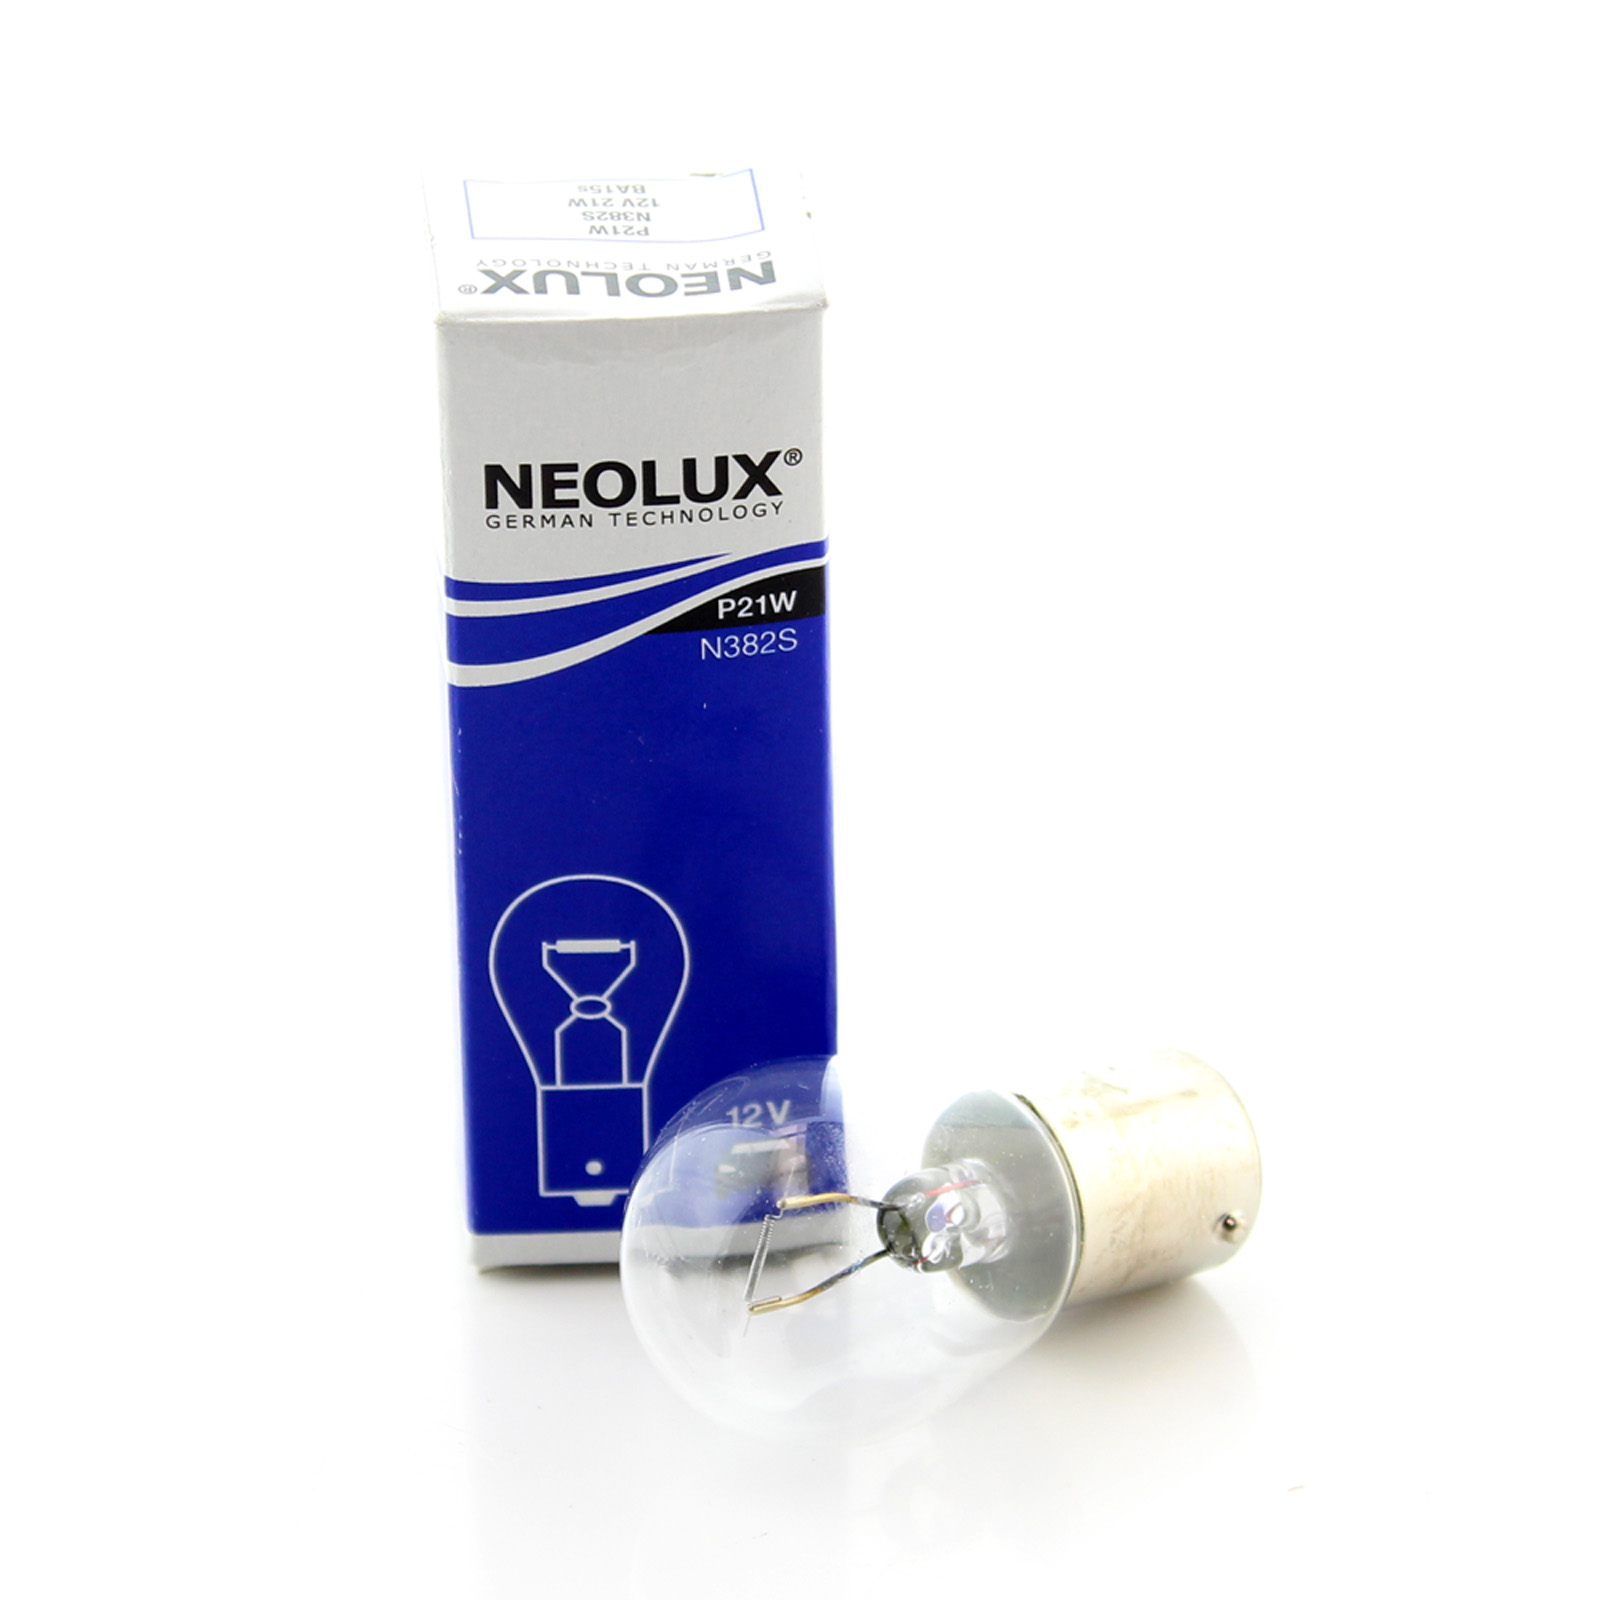 1x 382 P21w Neolux Rear Fog Light Bulb Standard Low Cost Direct Replacement Ebay